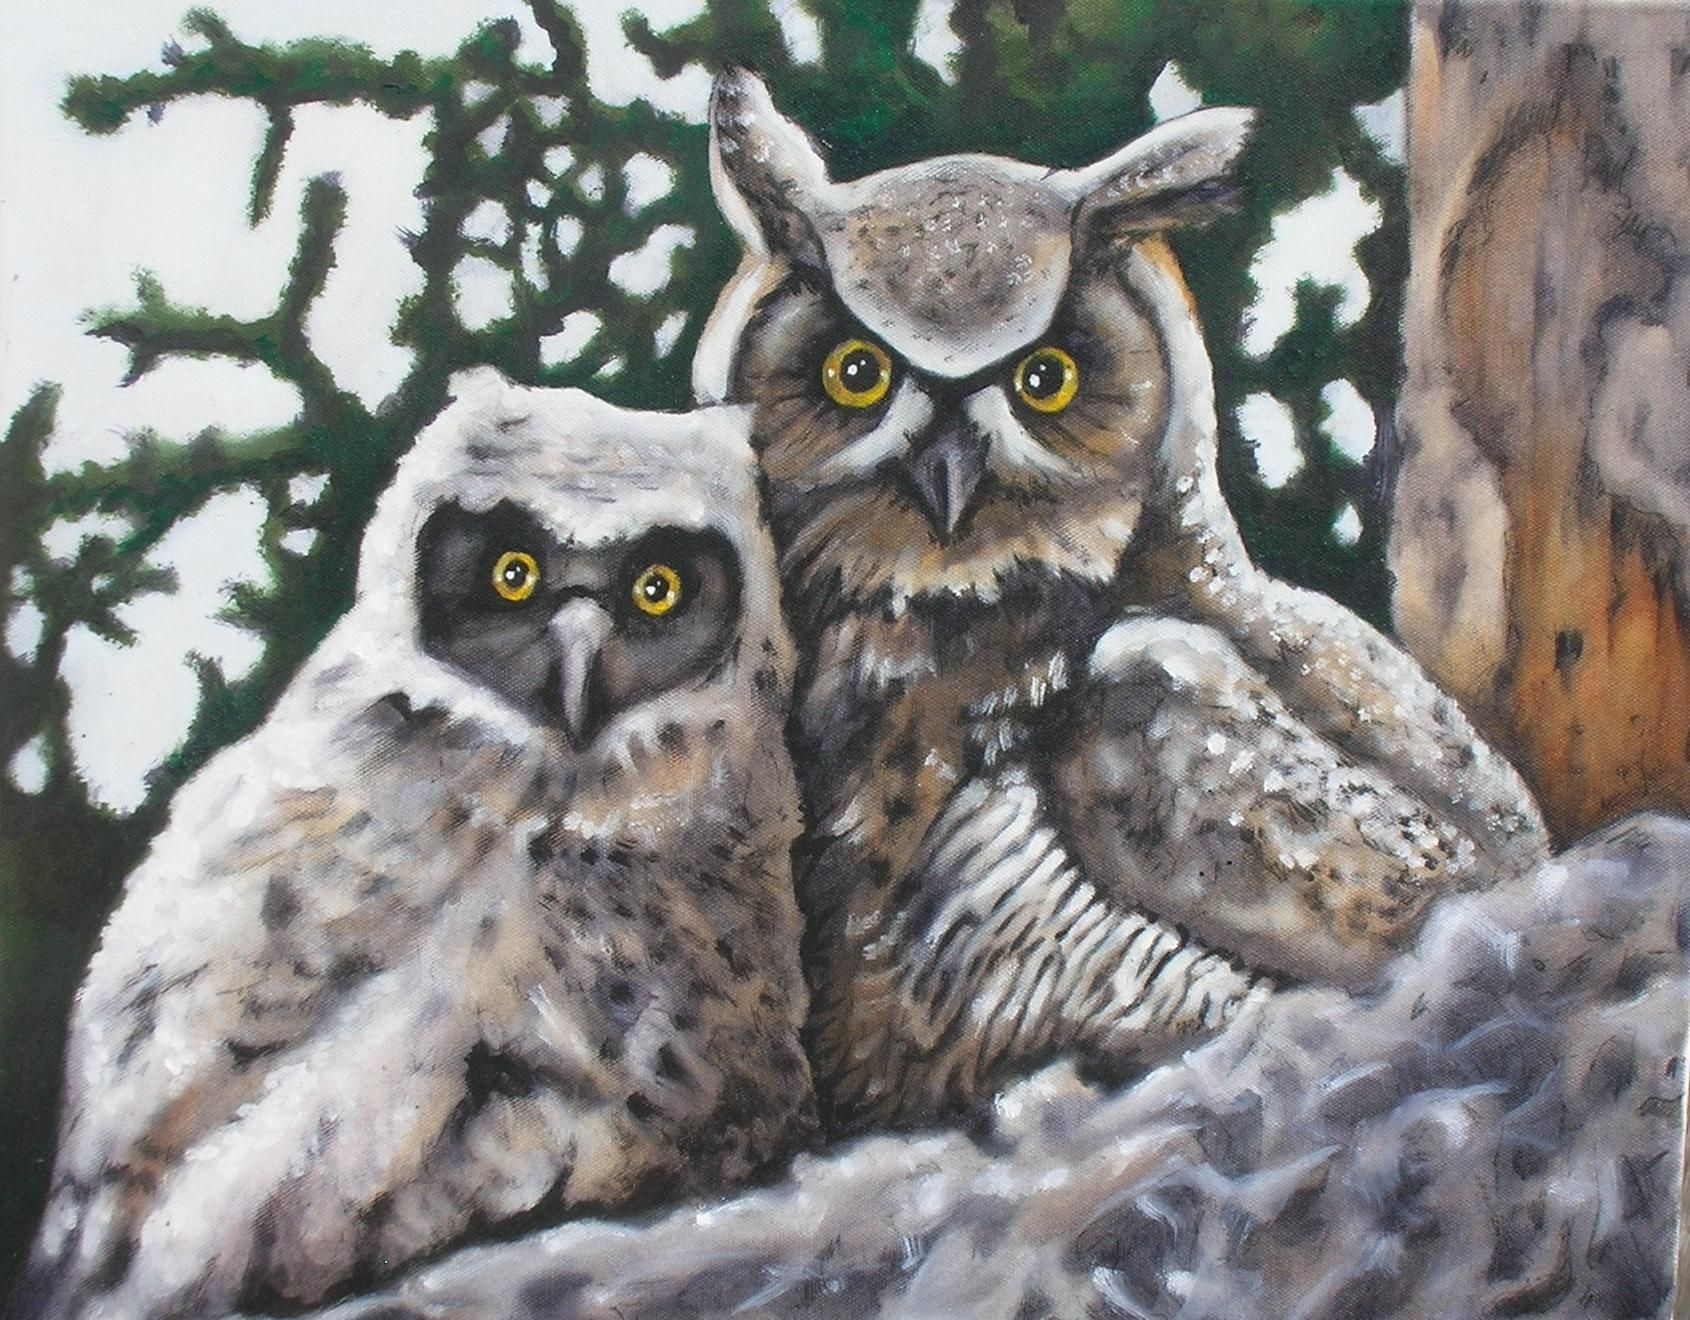 Oil Paintings Owls Cfbccbfdaae